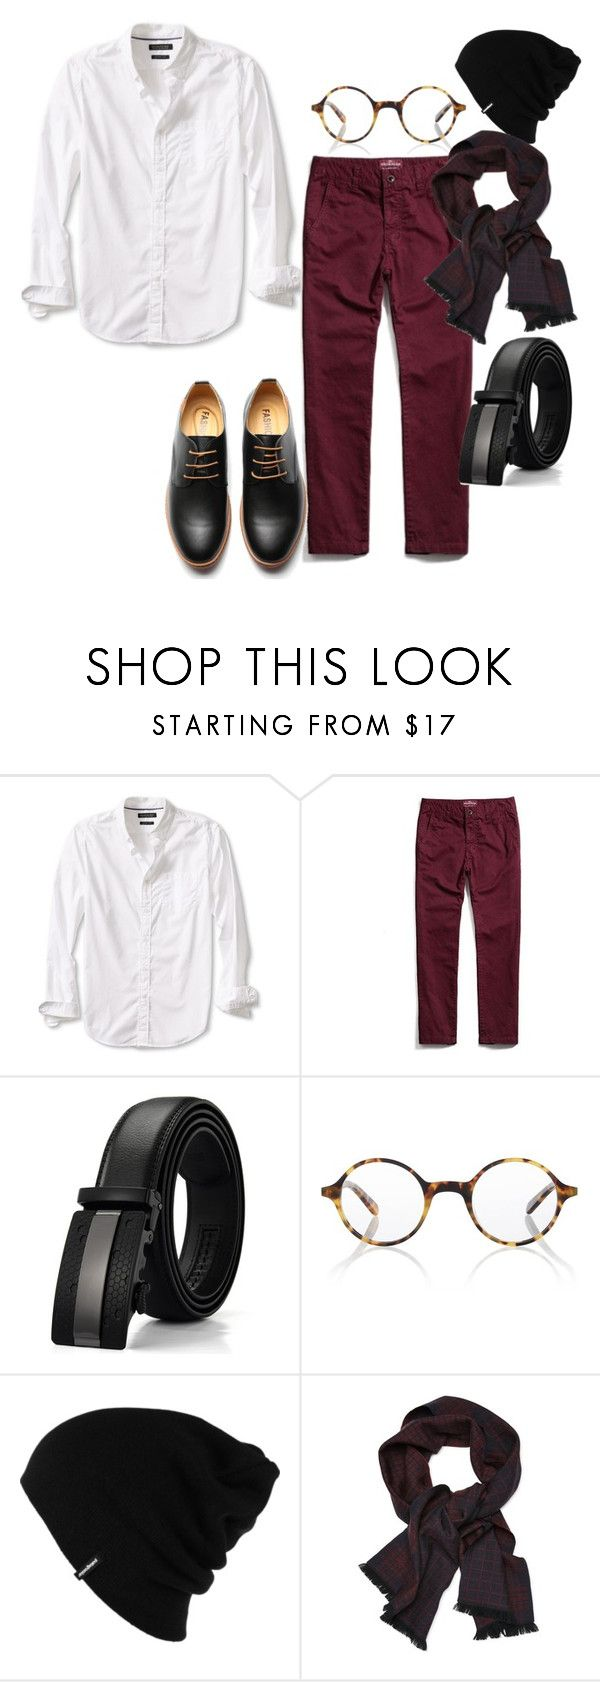 """""""Pristine and a pop"""" by niki-row ❤ liked on Polyvore featuring Banana Republic, Finlay & Co., Patagonia, men's fashion and menswear"""